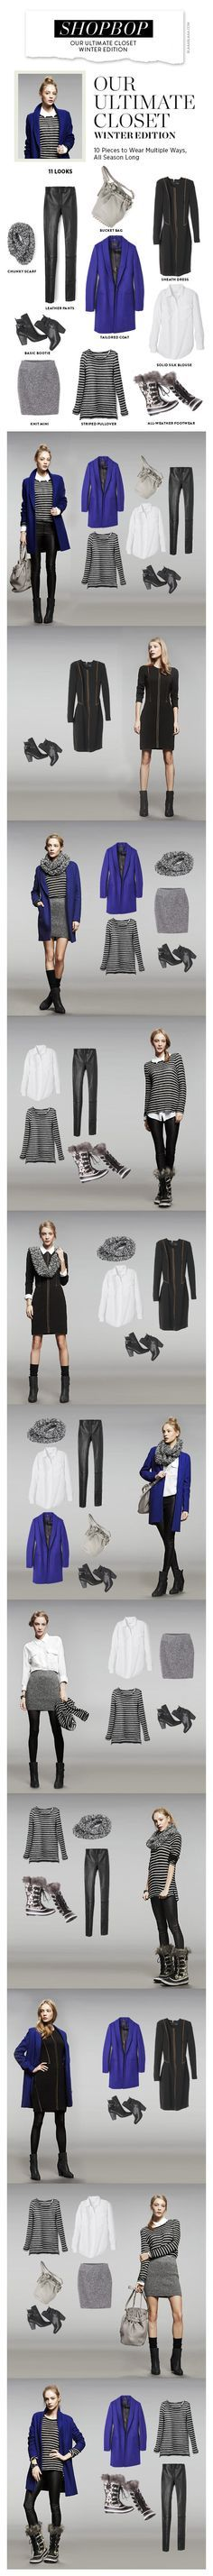 11 looks from 10 pieces - via Shopbop - Our Ultimate Closet – Winter Edition